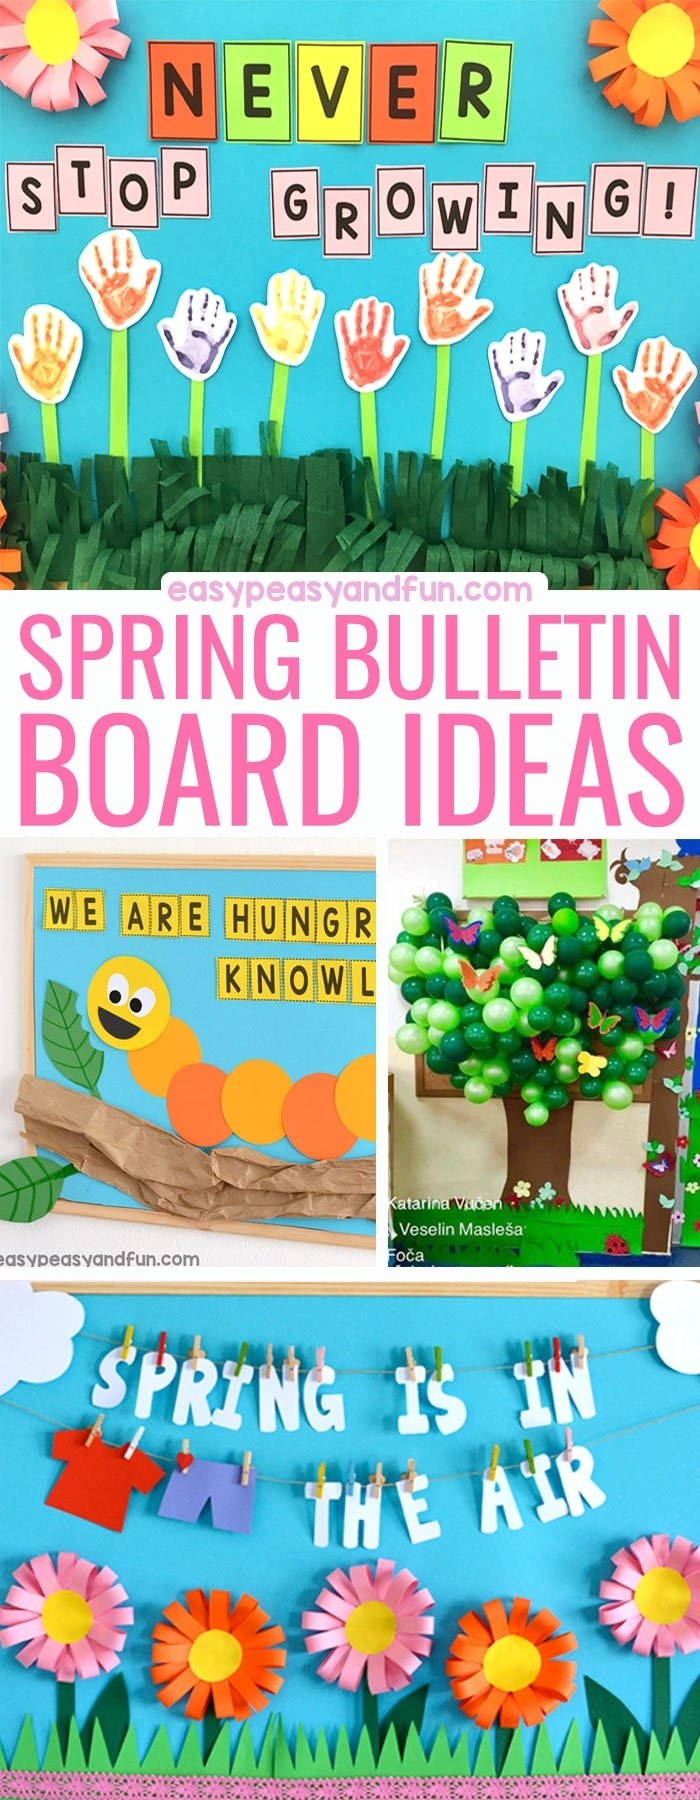 10 Most Popular Bulletin Board Ideas For Spring spring bulletin board ideas for your classroom easy peasy and fun